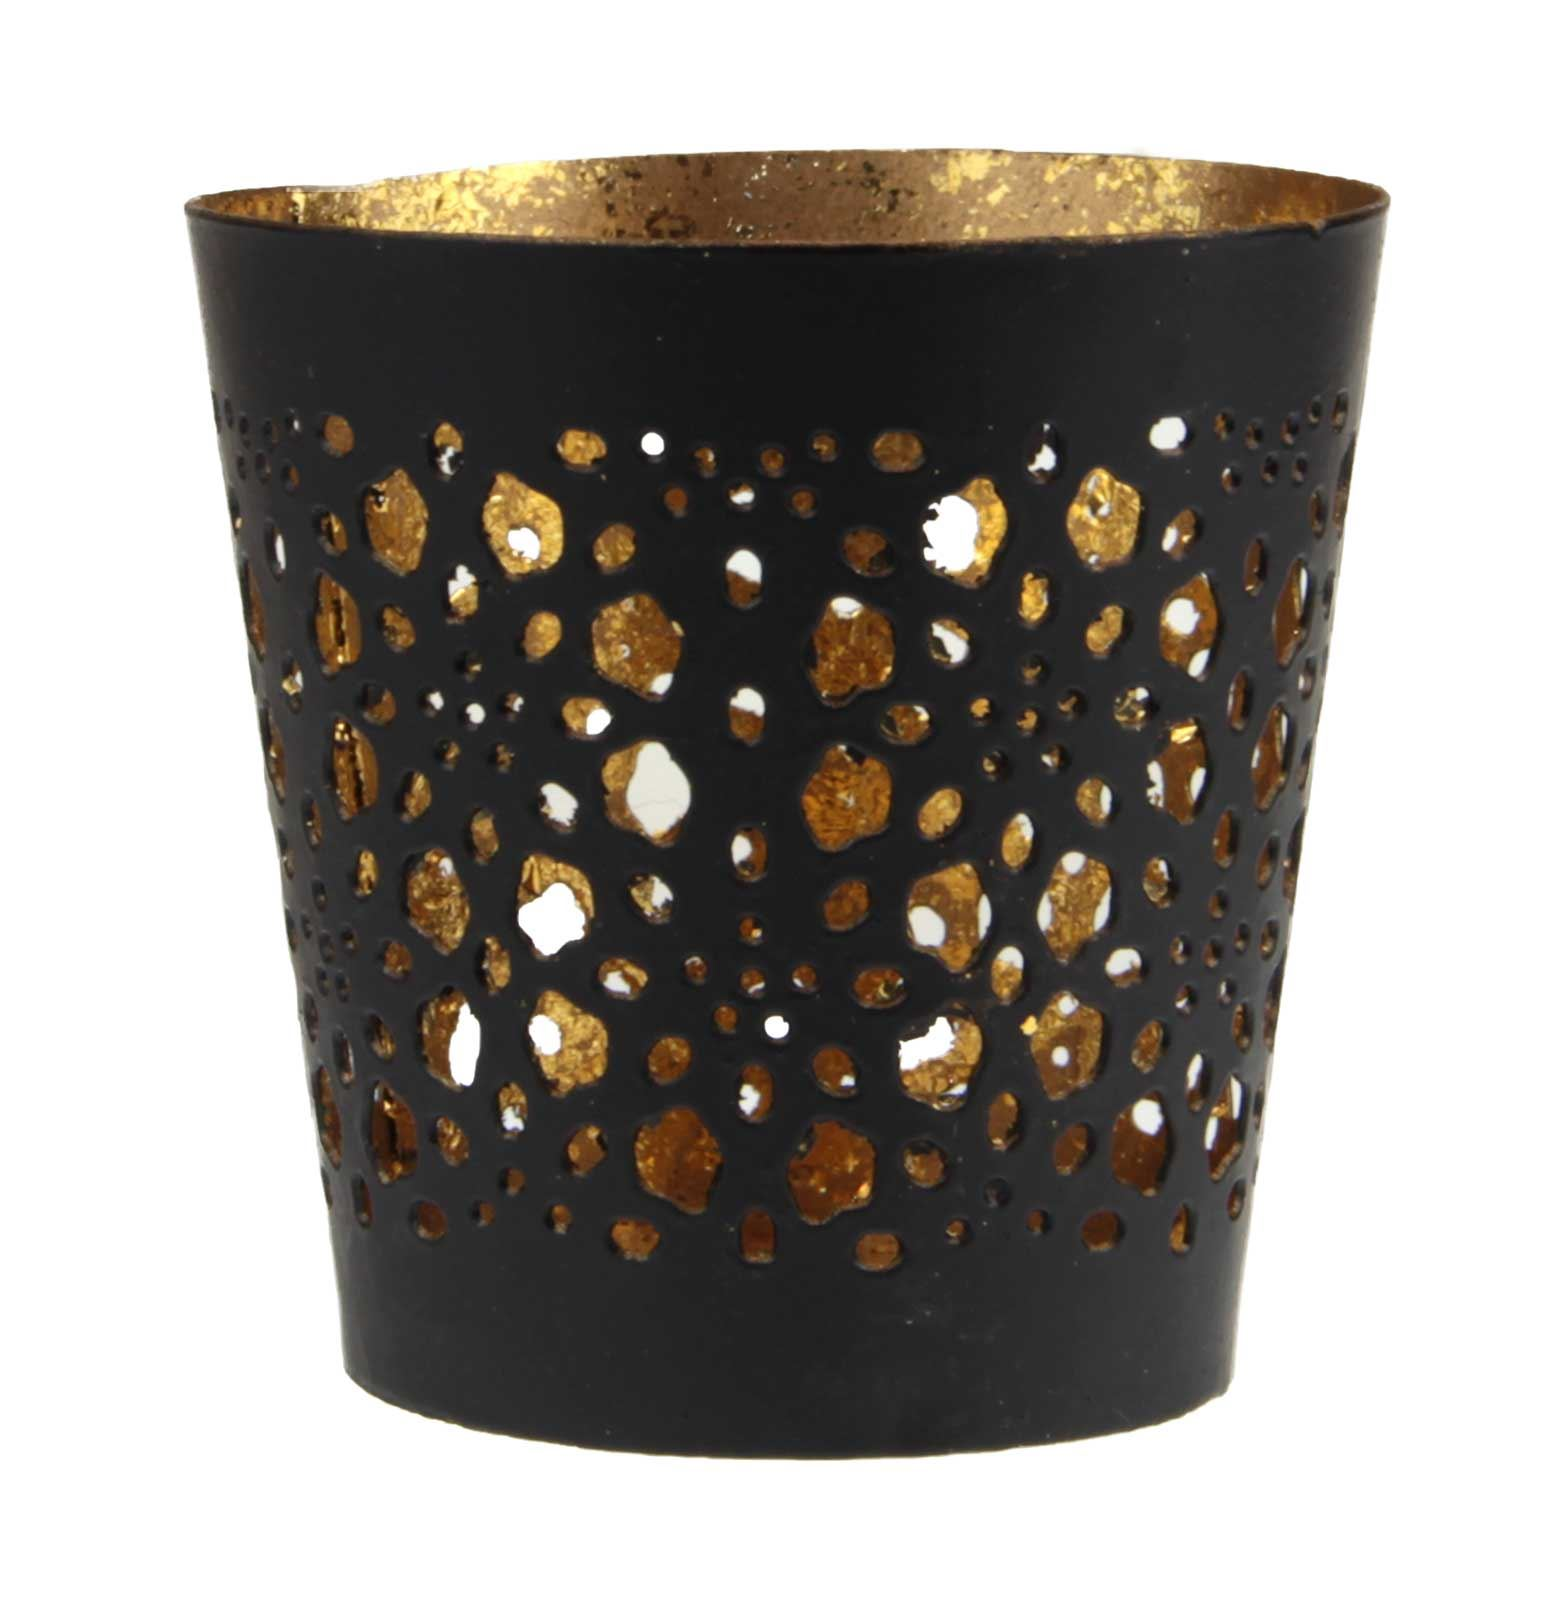 Vintage Iron Cut Out Candle Tealight Holder Black Gold Ebay